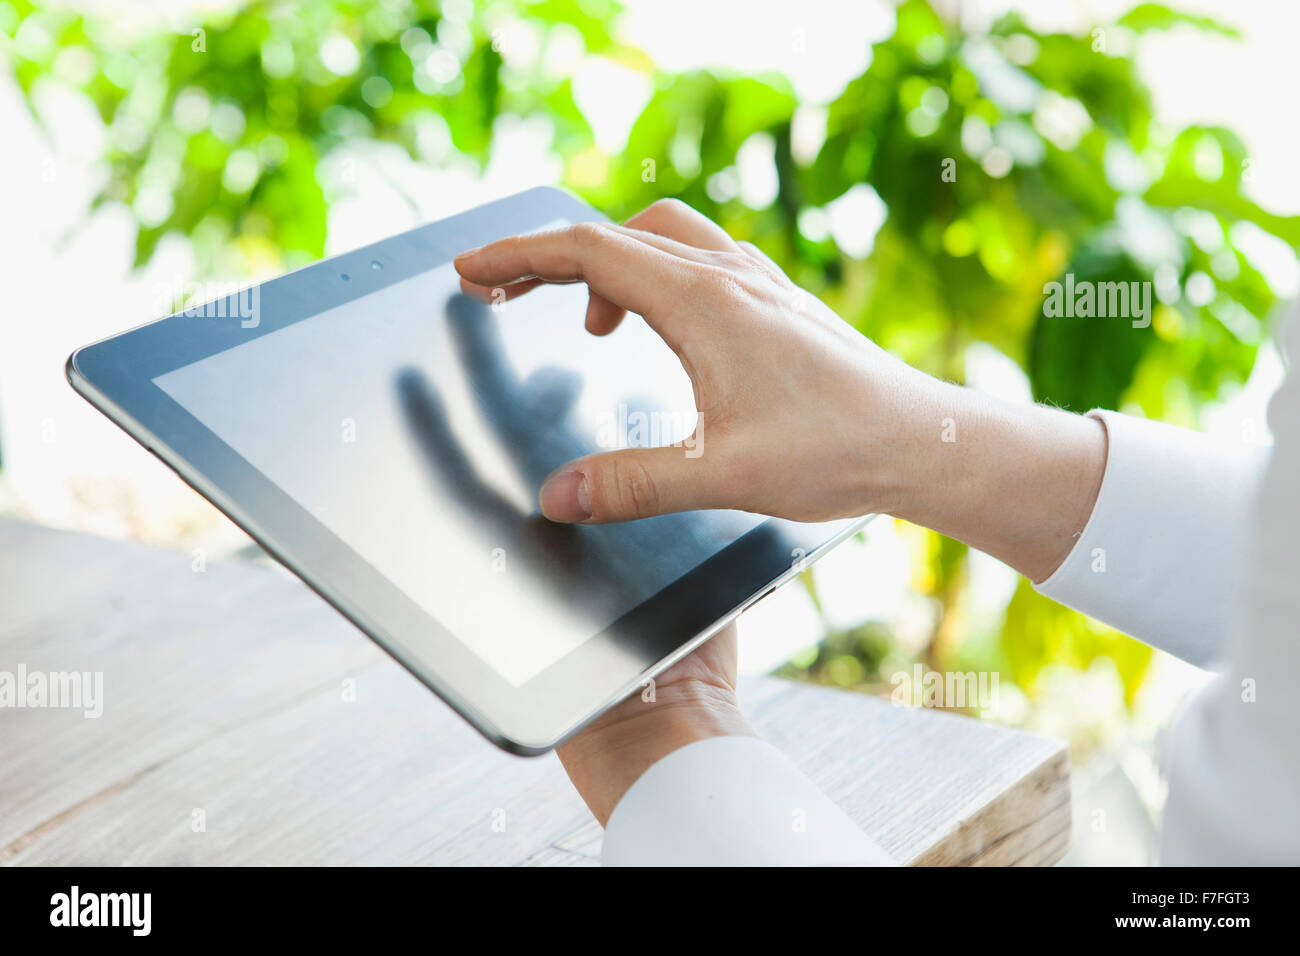 a man tapping a table PC - Stock Image